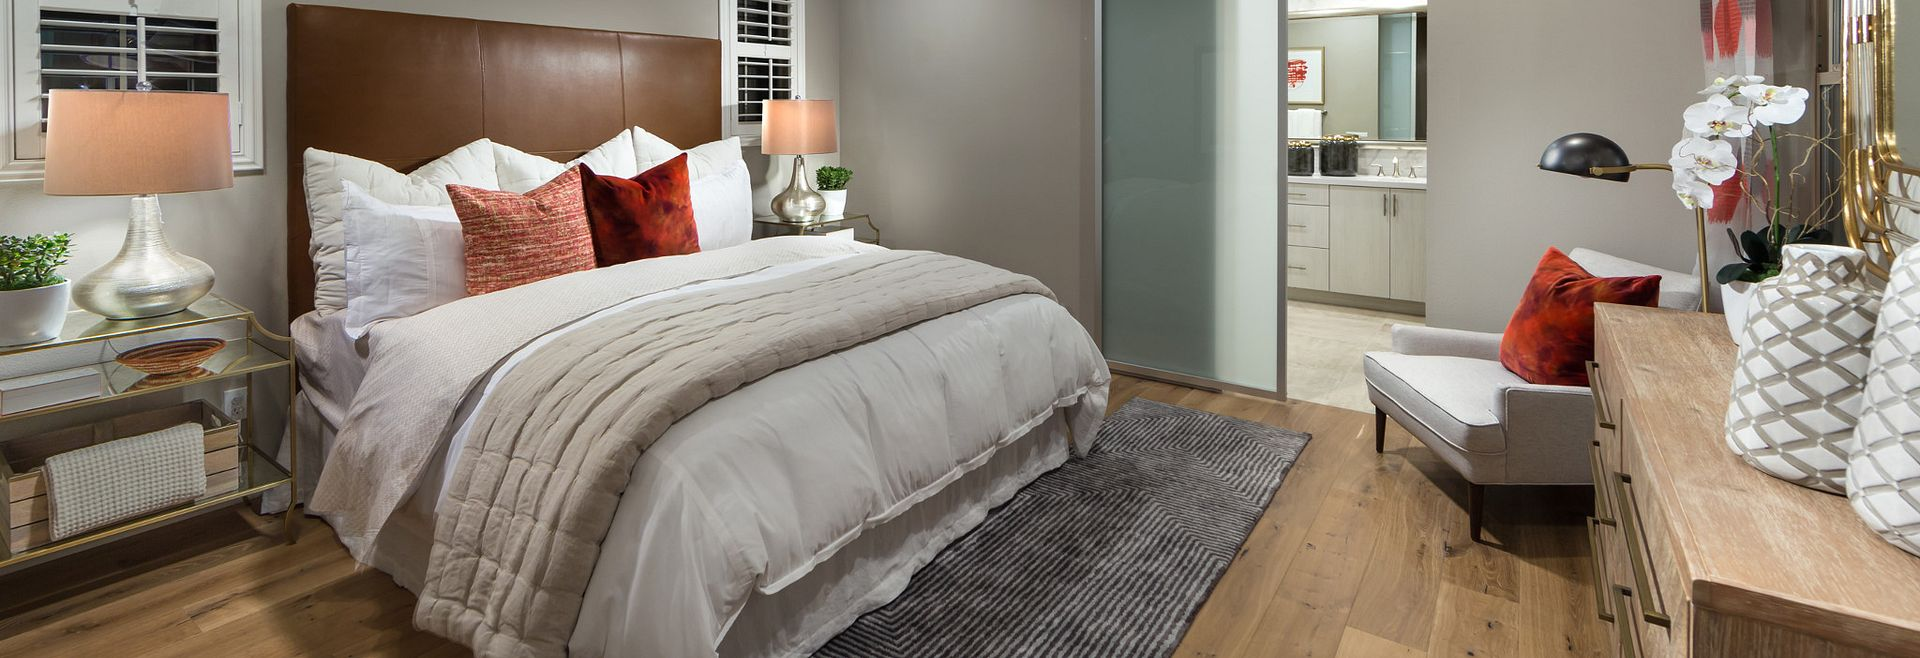 Master bedroom with bed, area rug, wood floors, recessed lights, night stands, and table lamps